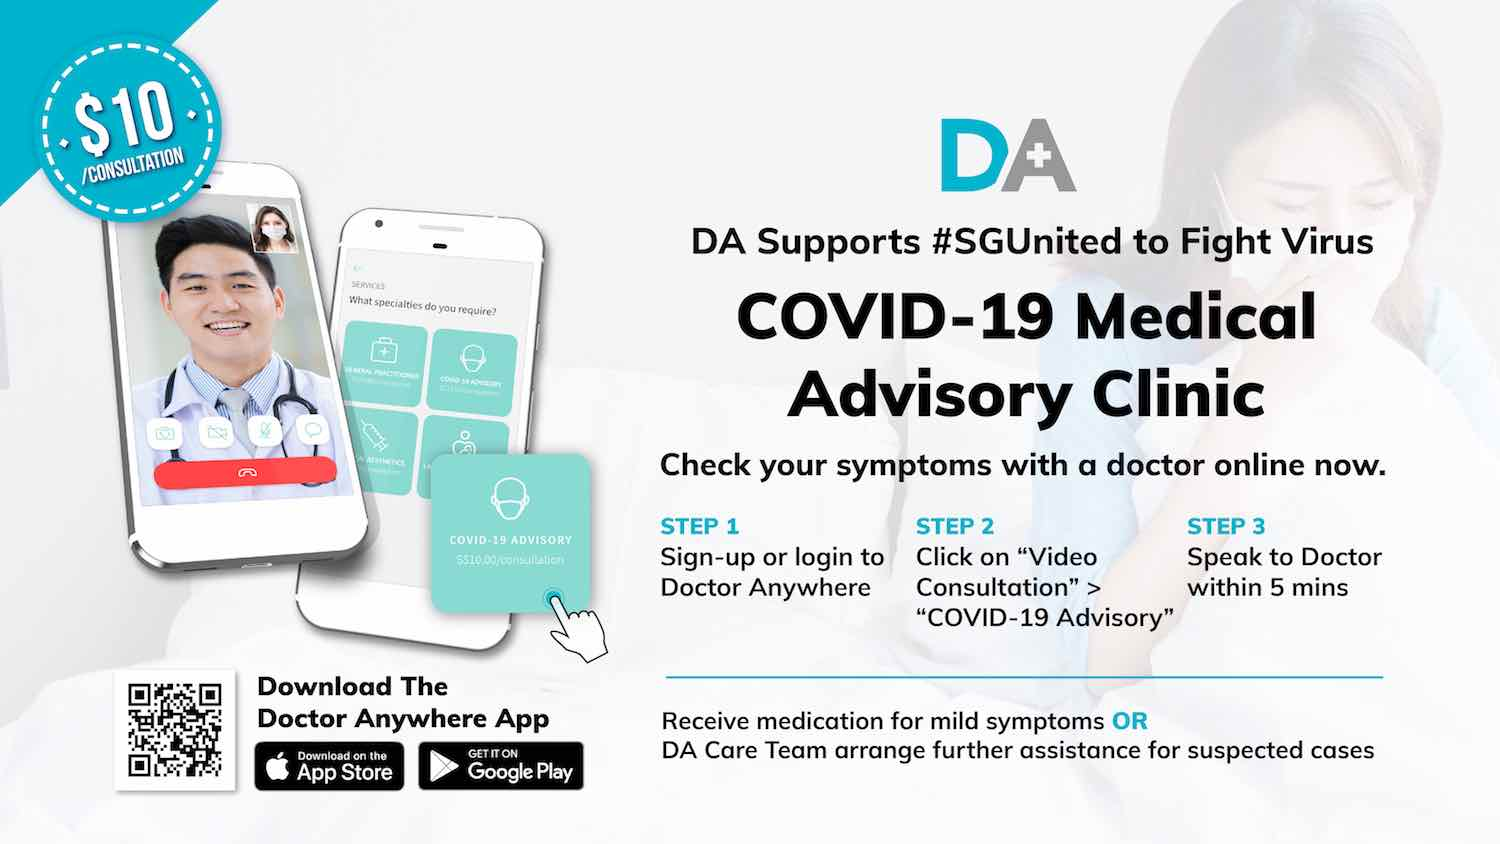 Doctor Anywhere Partners Major Insurers to Launch COVID-19 Medical Advisory Clinic and Support Governments' Social Distancing Measures